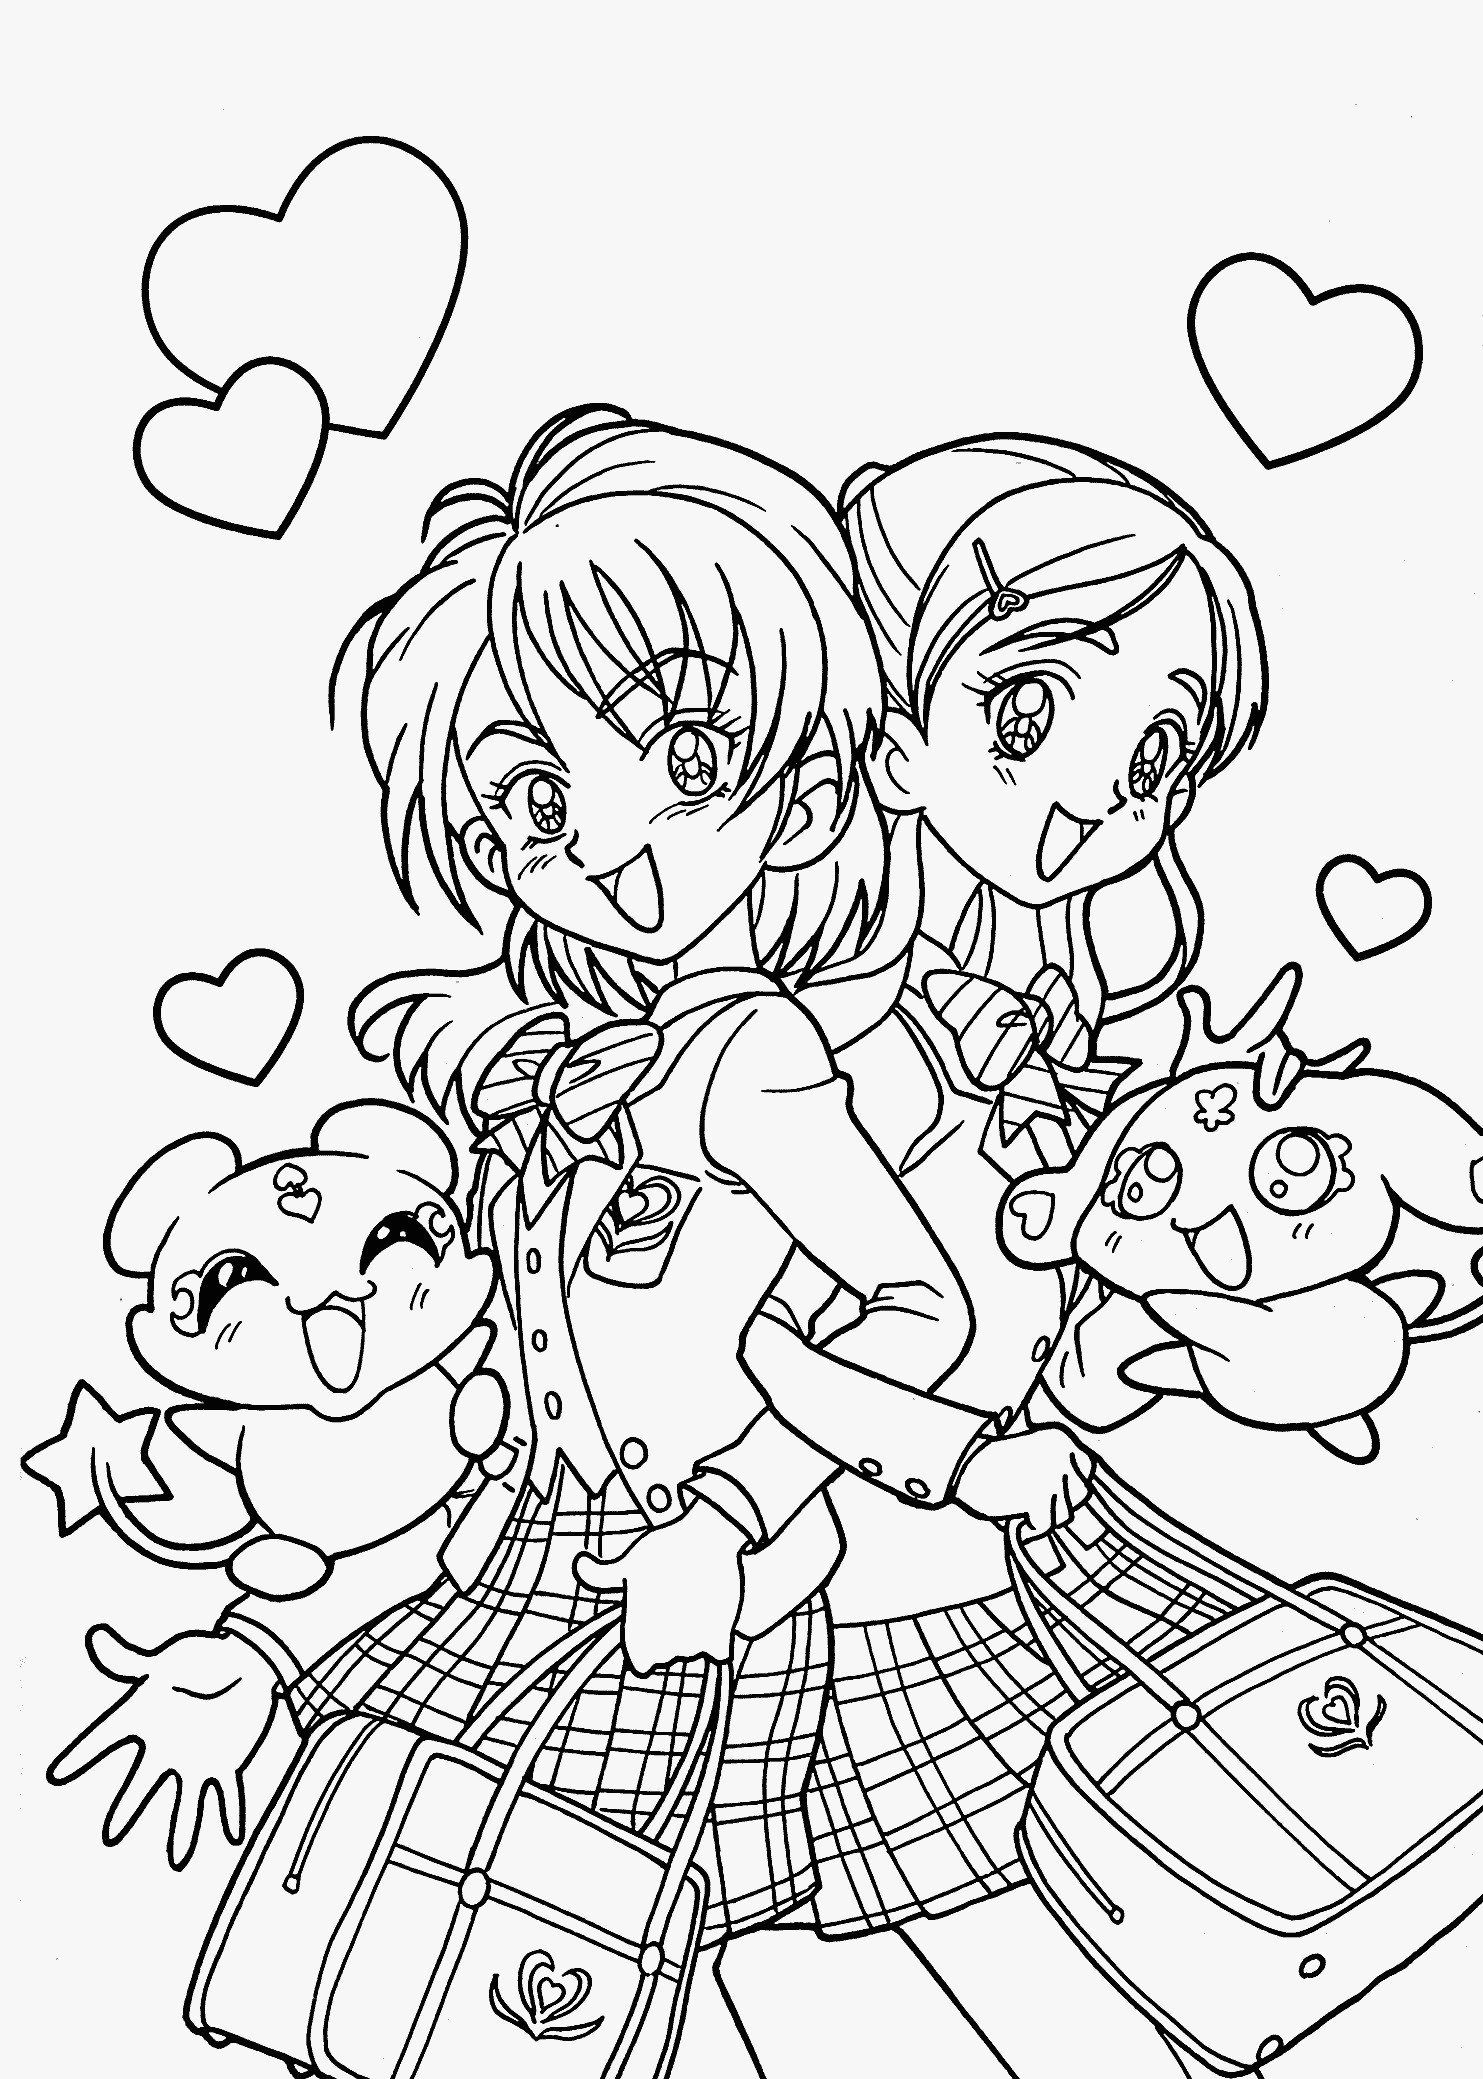 anime girl coloring sheets manga coloring pages to download and print for free sheets anime coloring girl